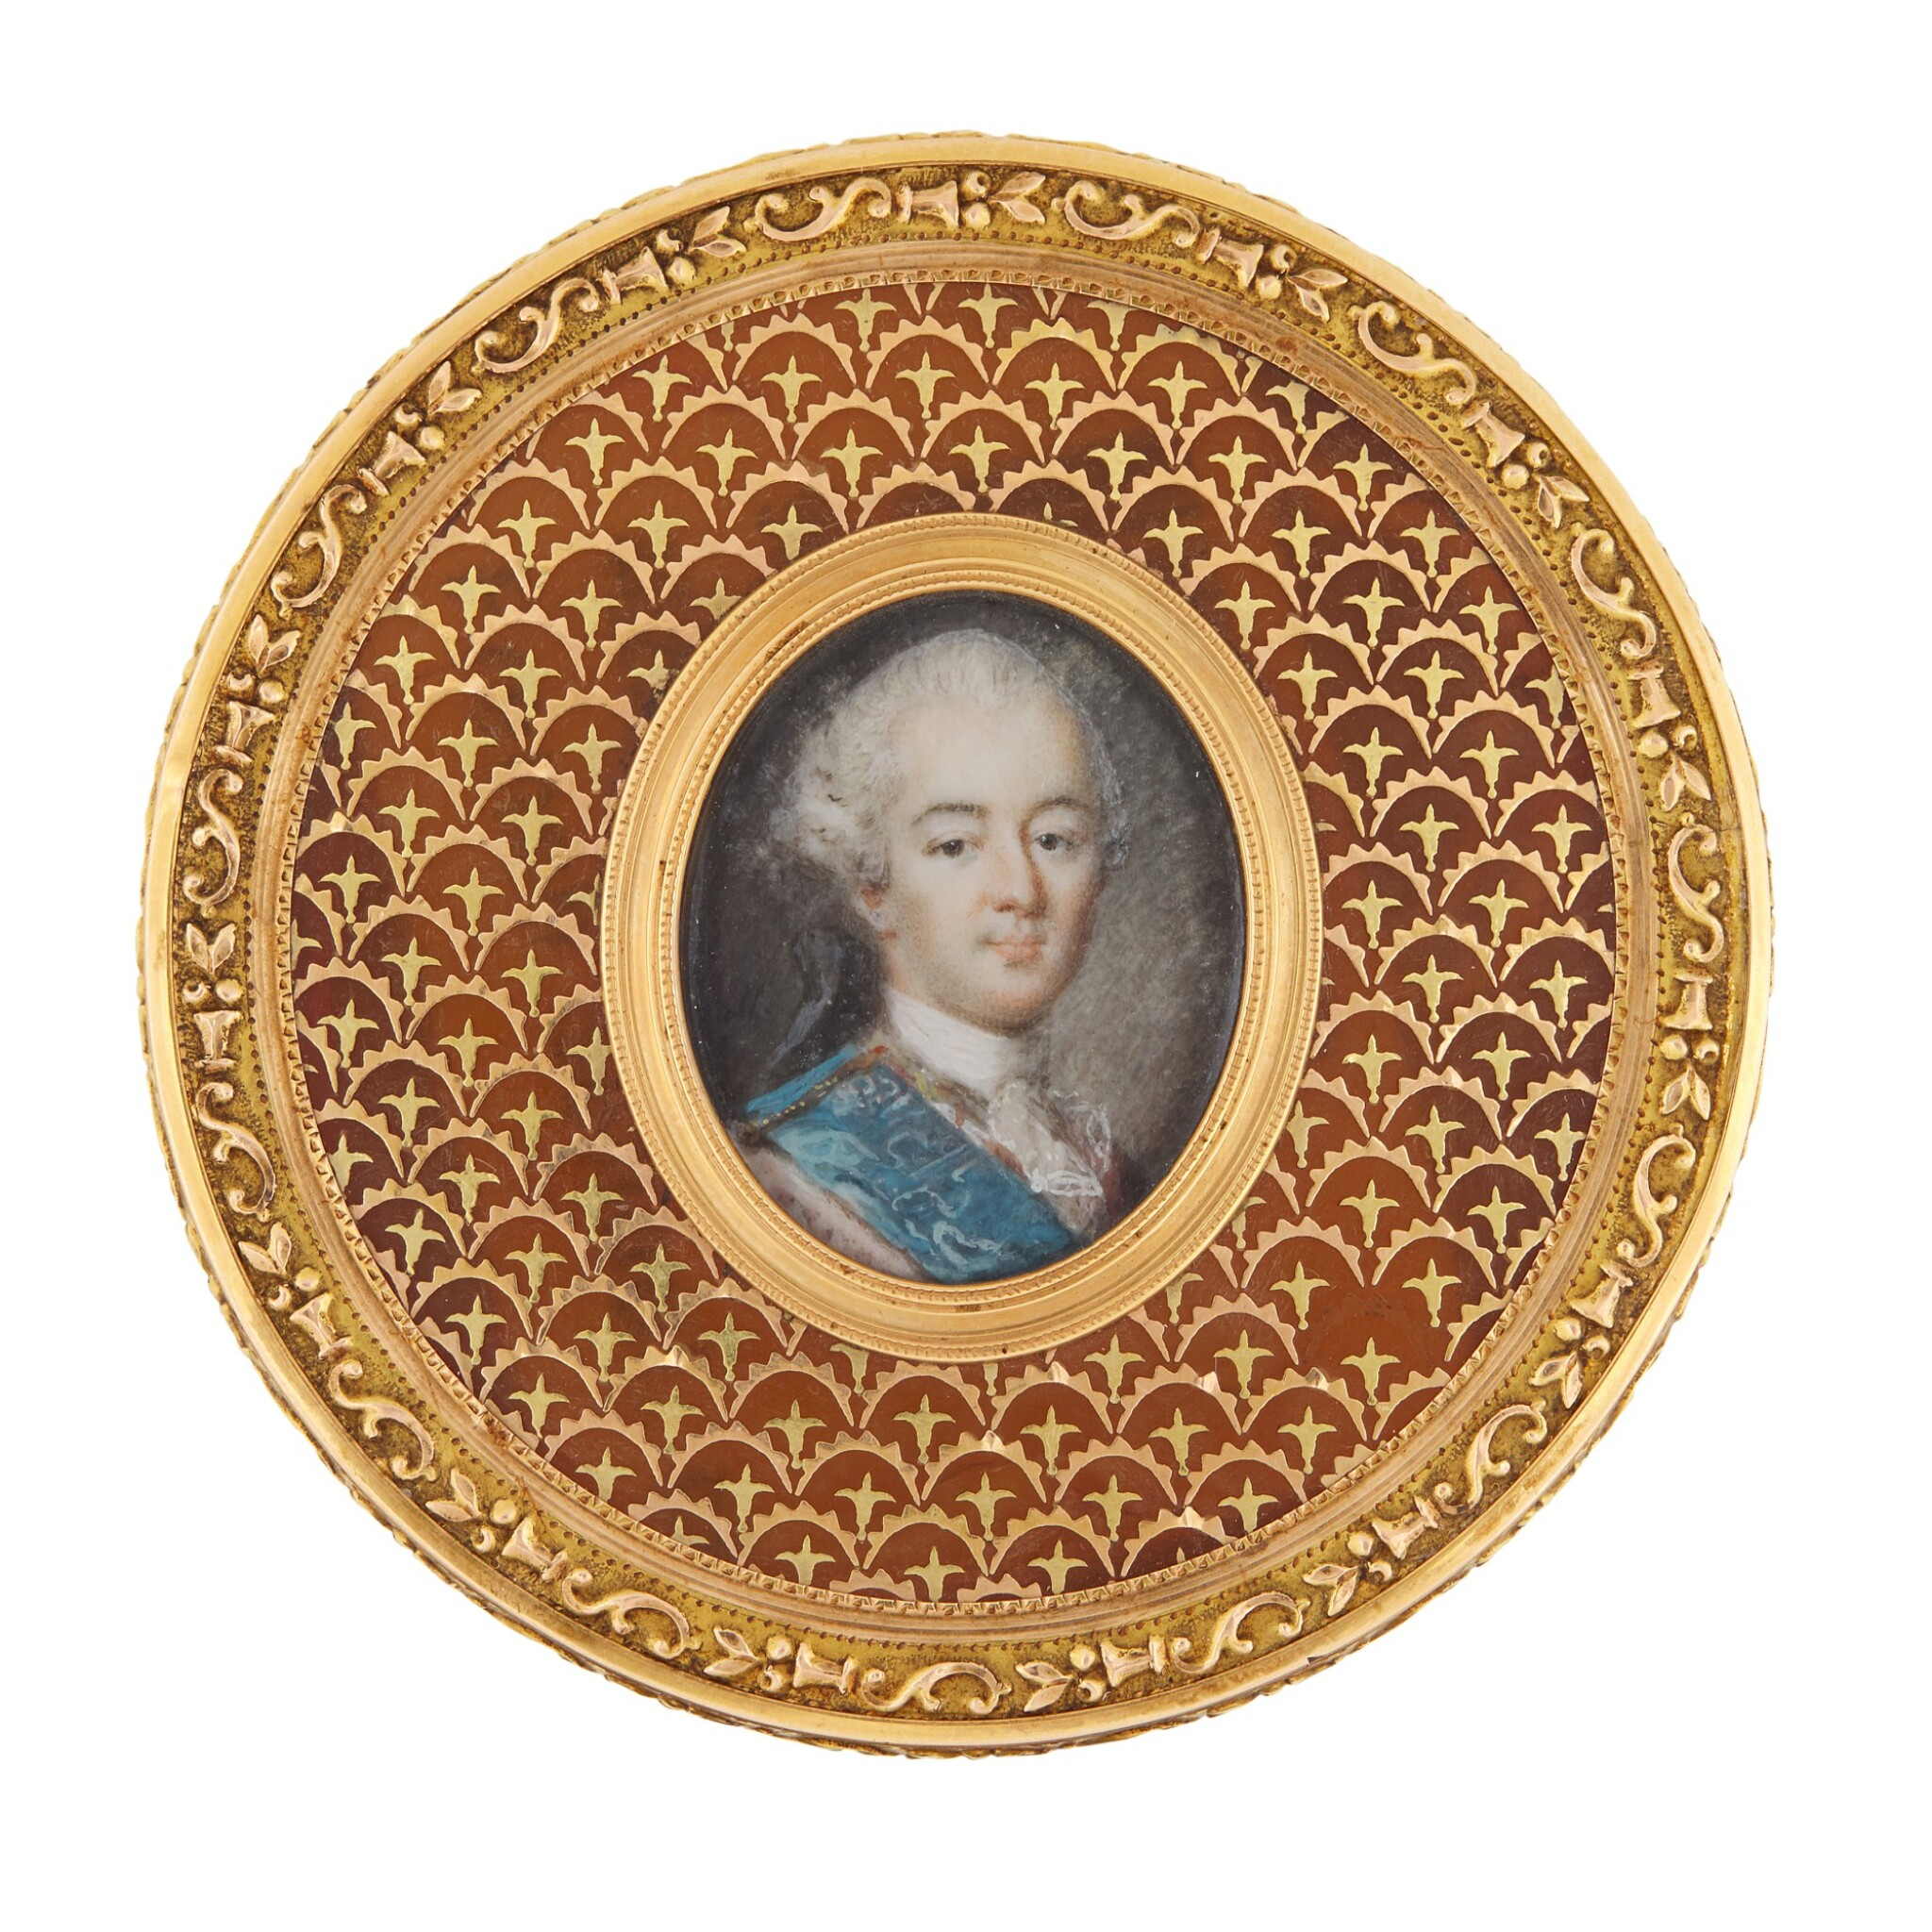 View 1 of Lot 137. Portrait of Louis-Philippe-Joseph of Orléans, Duke of Chartres (1747-1793), circa 1775.